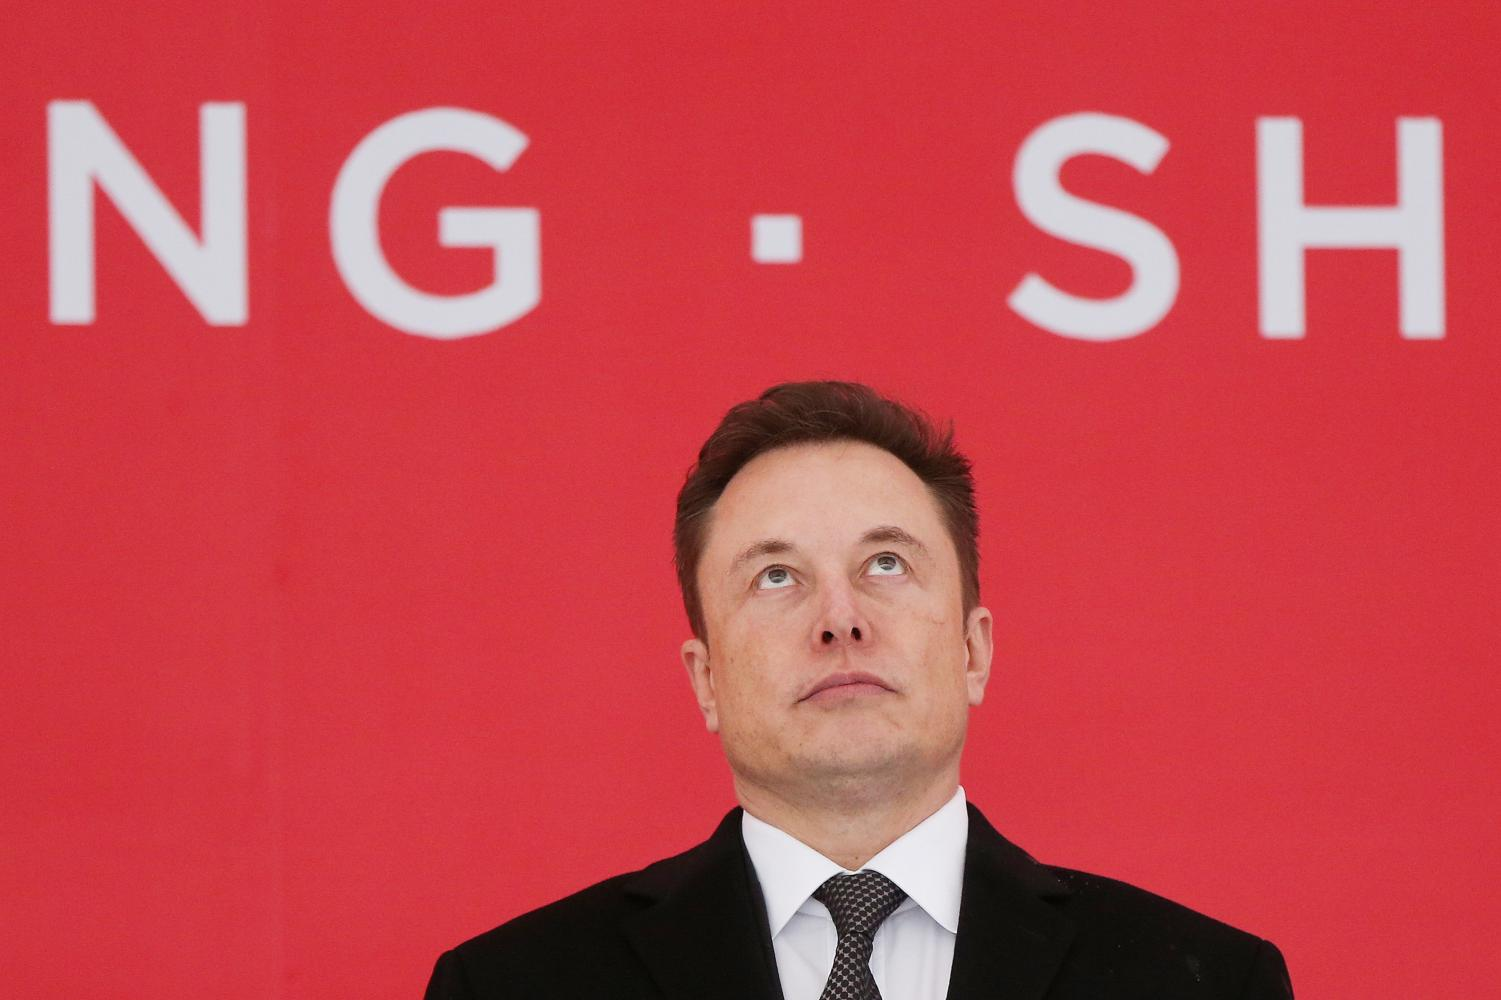 Tesla CEO Elon Musk attends the ceremony of Tesla Shanghai Gigafactory in Shanghai on Jan. 7. Columnist Fred Shoaff argues the company's inefficient business strategies will be its downfall.